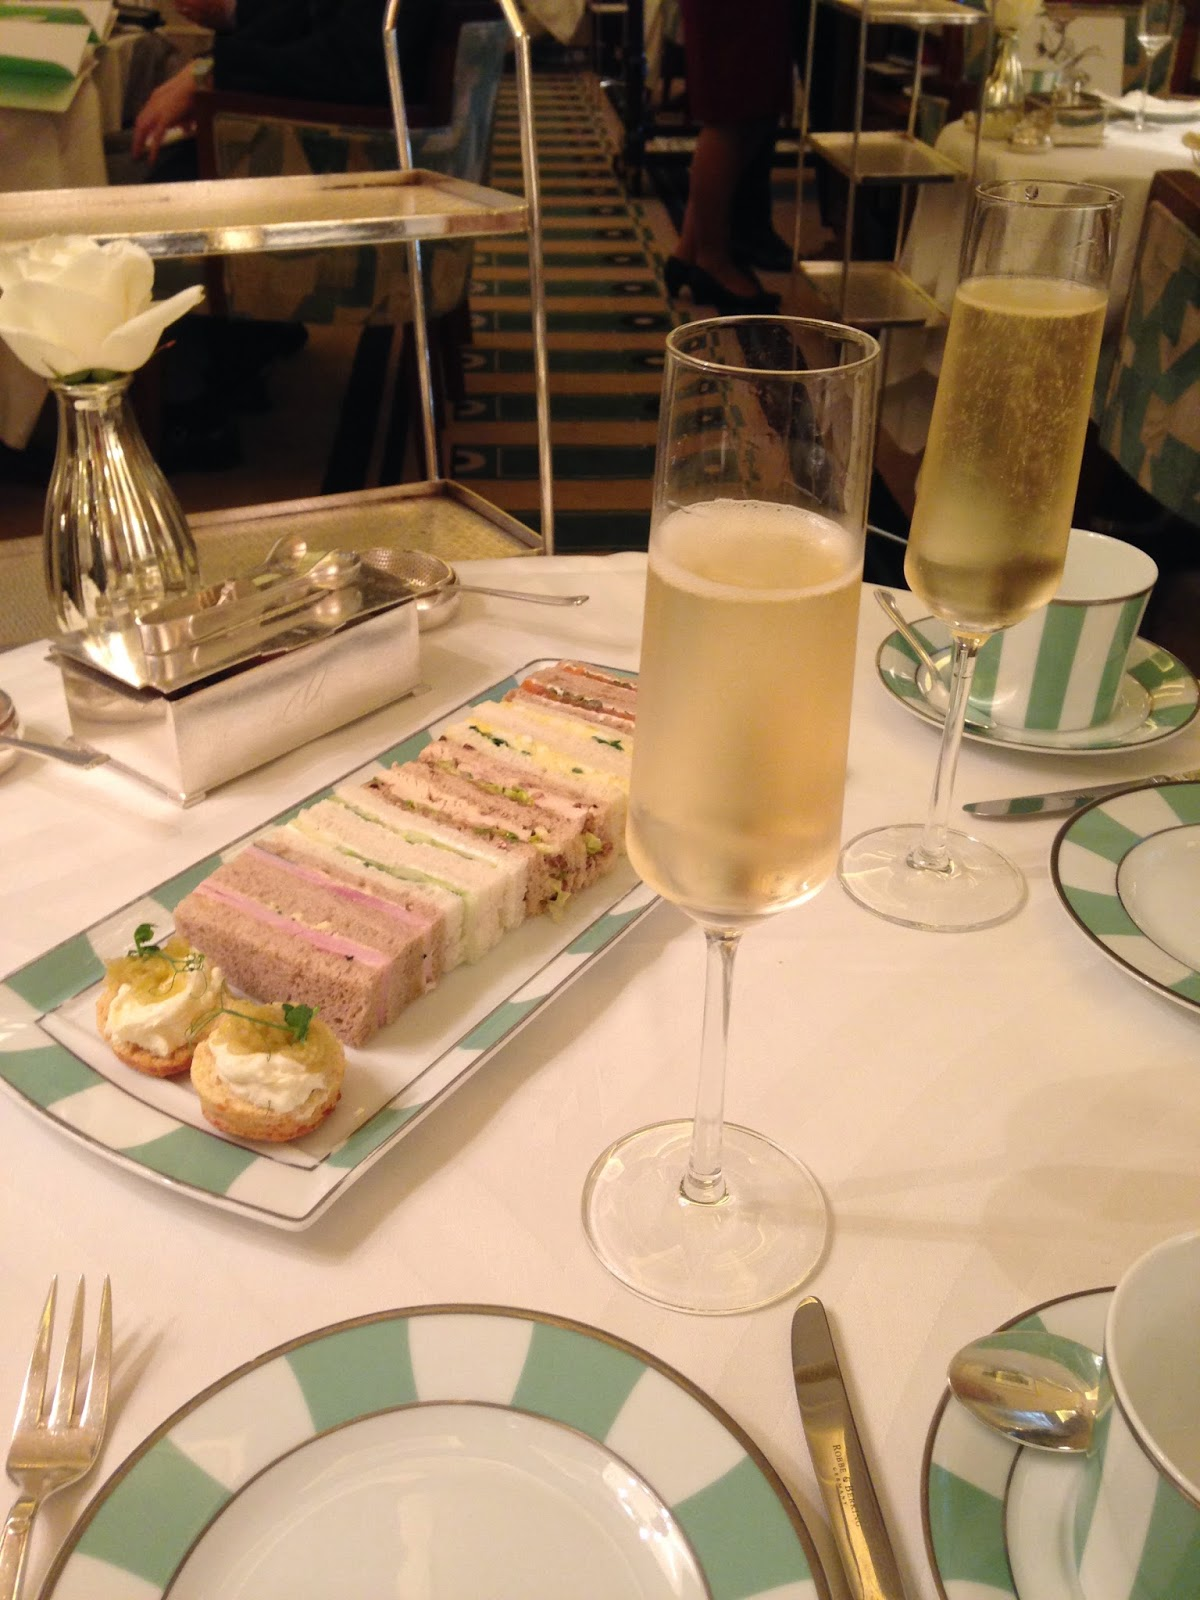 Afternoon Tea at Claridge's champagne